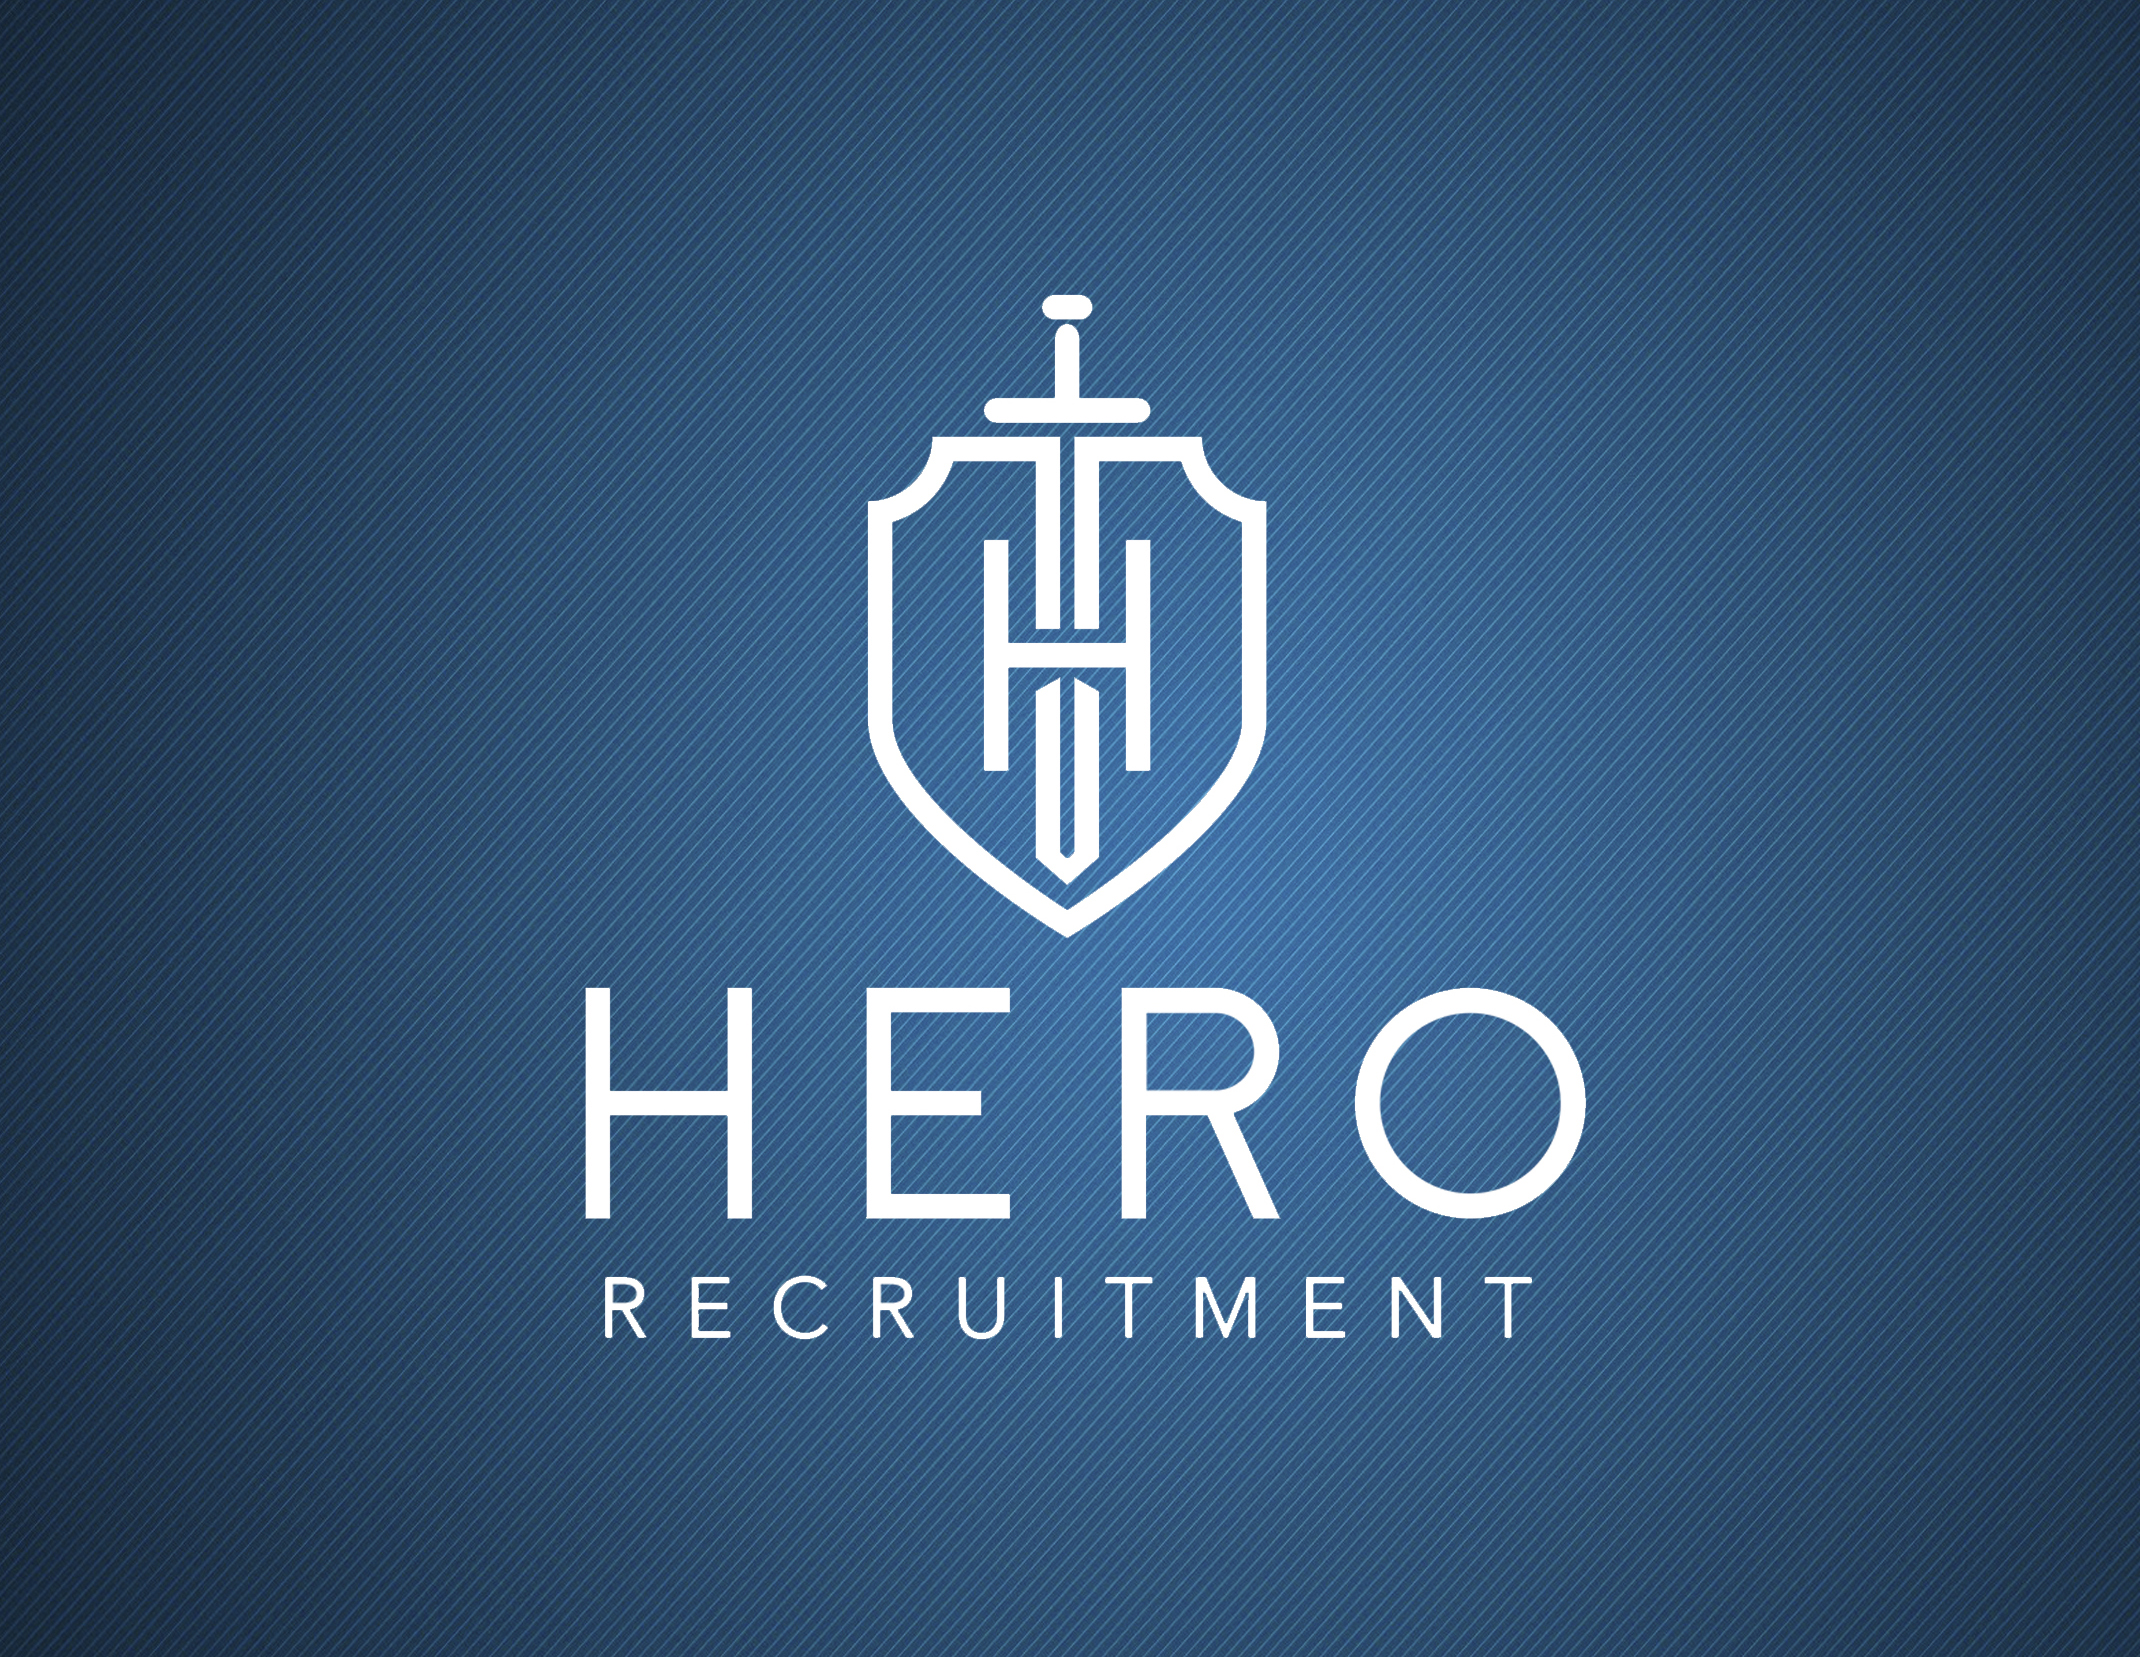 HERO RECRUITMENT